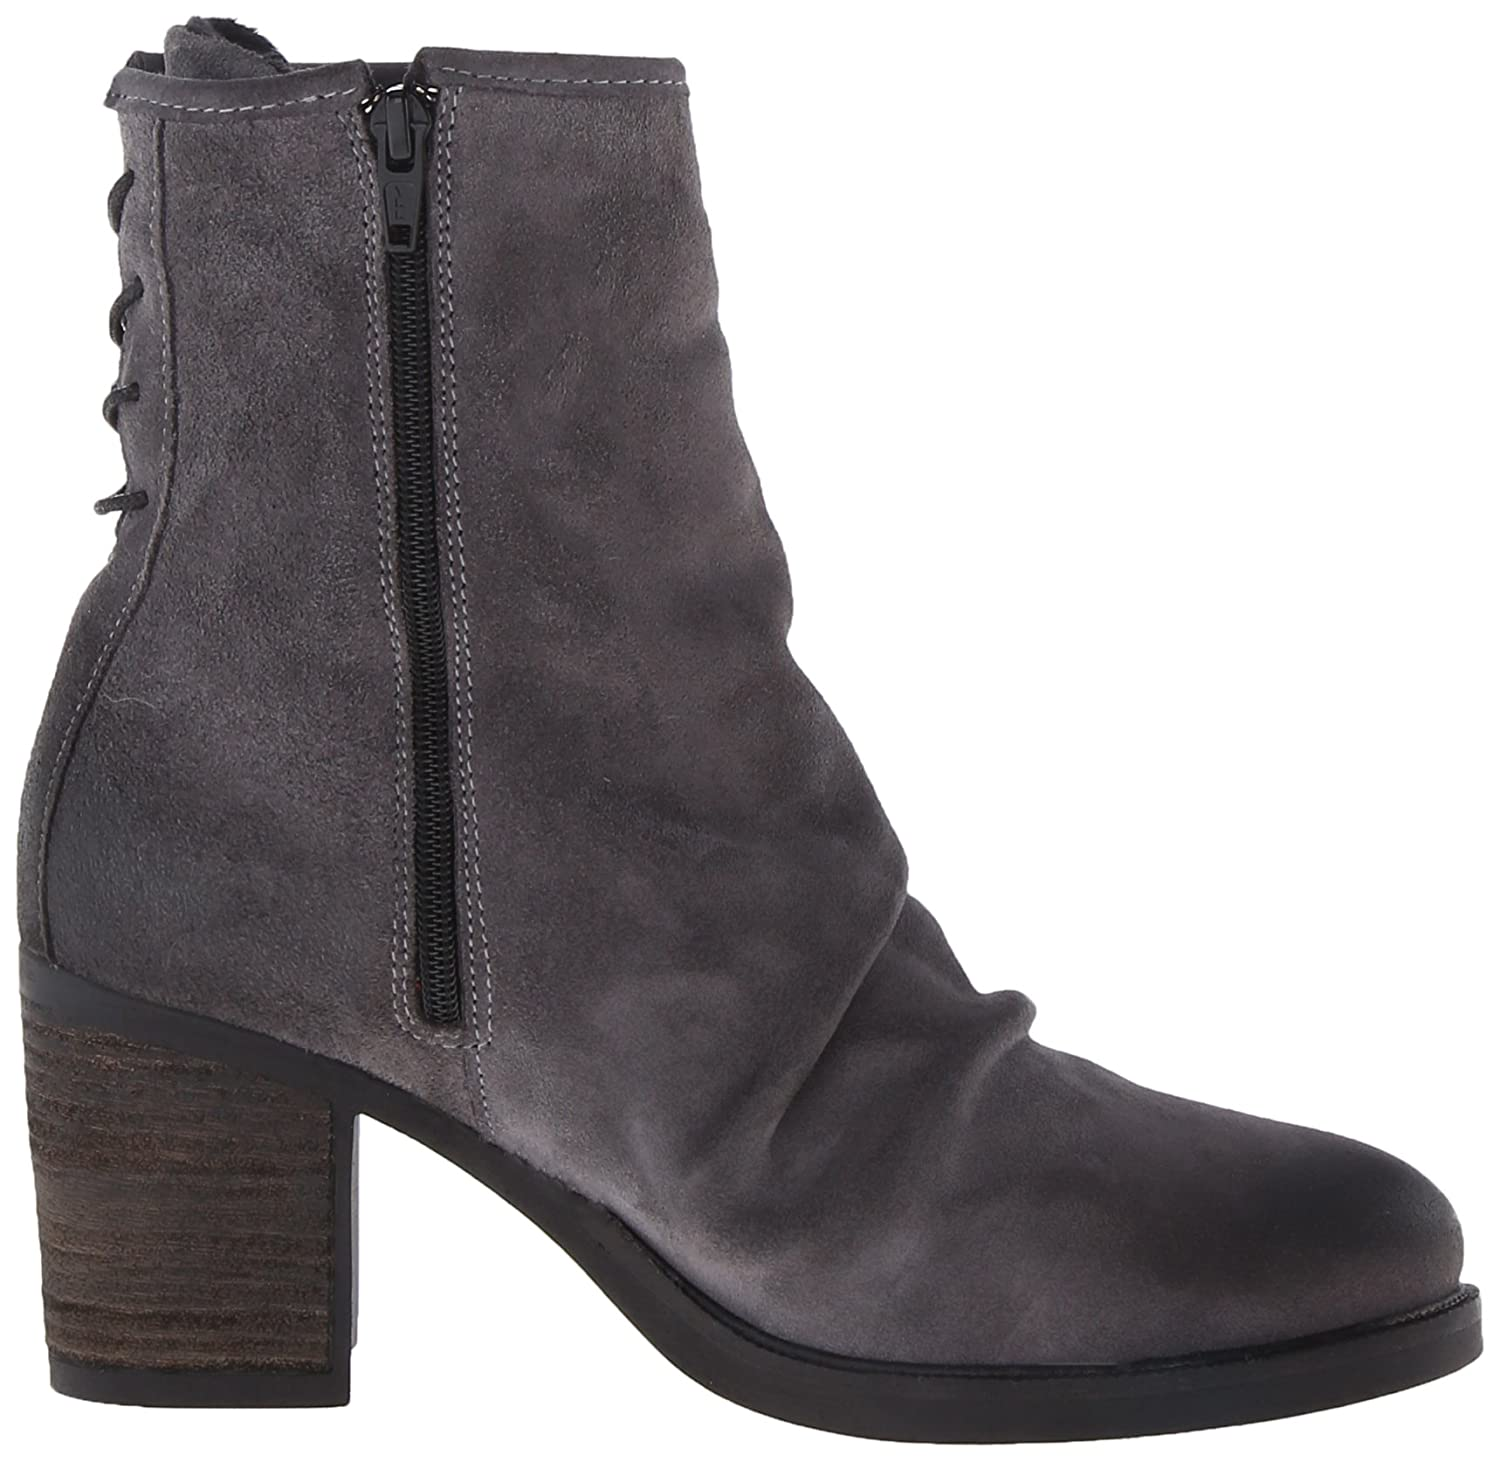 Bos. & M Co. Women's Barlow Boot B00VMUOVKW 36 EU/5-5.5 M & US|Grey Oil Suede c6629b